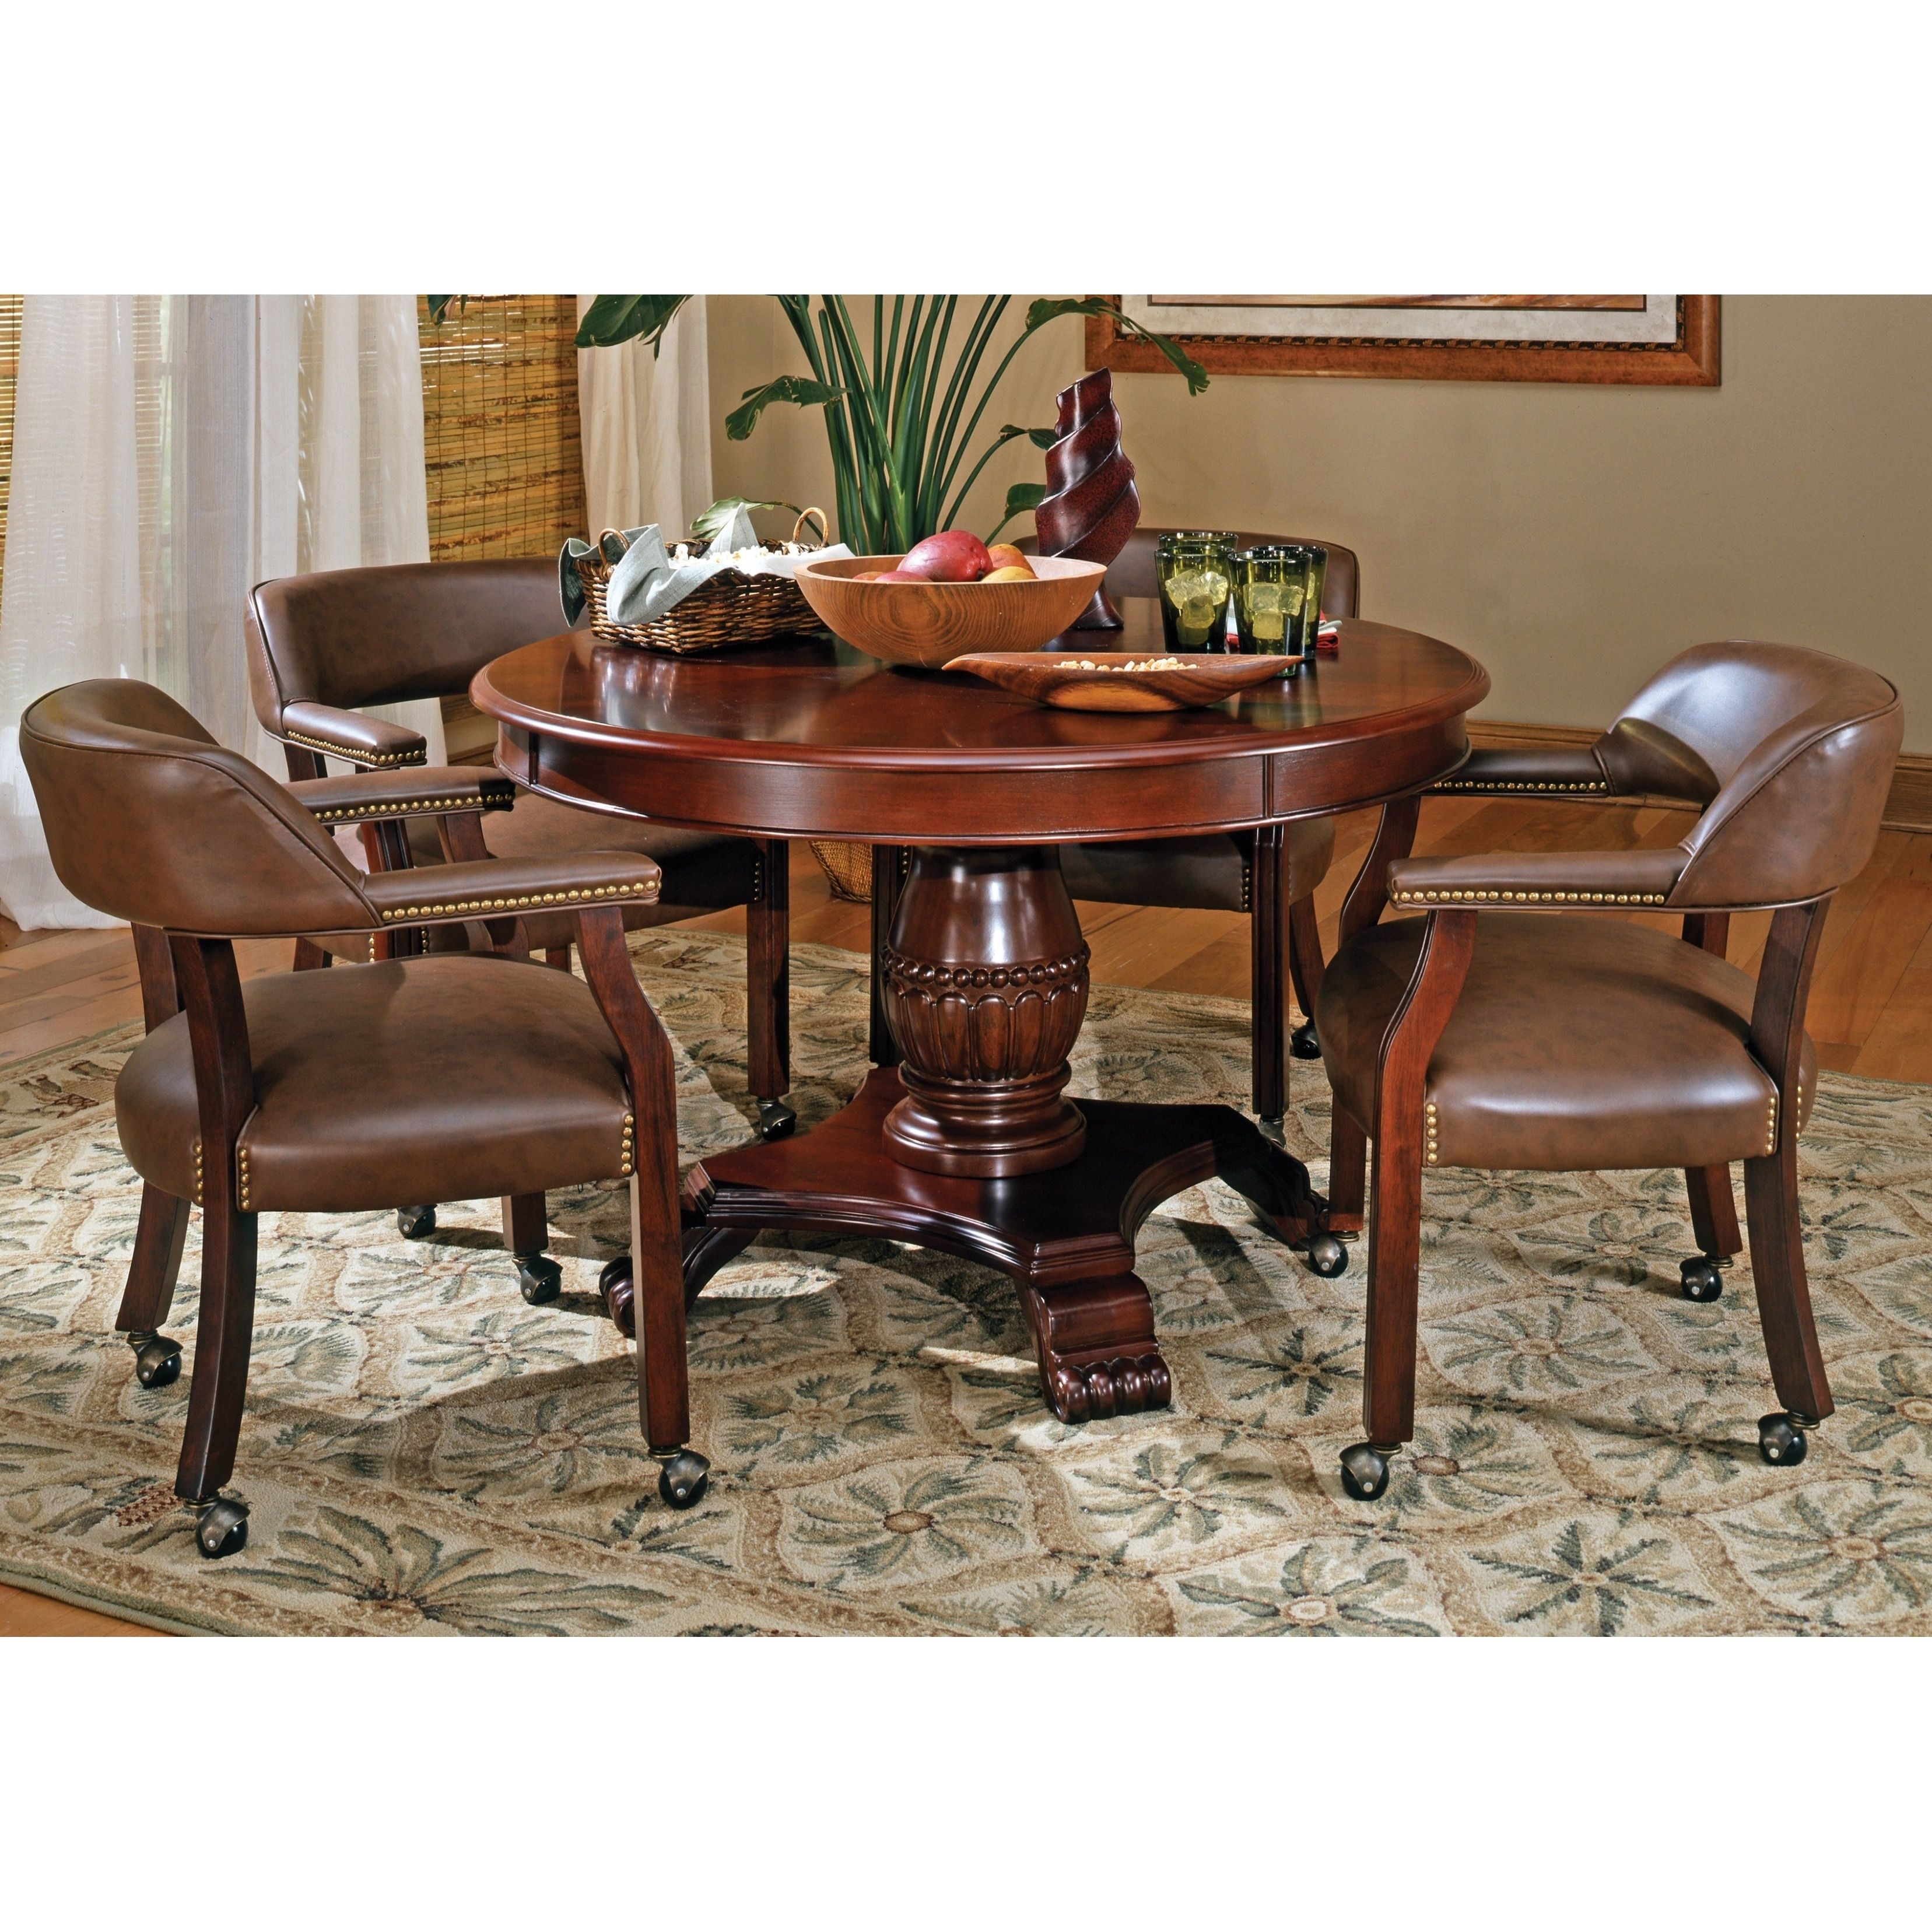 Gracewood Hollow Broker Captains Chair Dining chairs